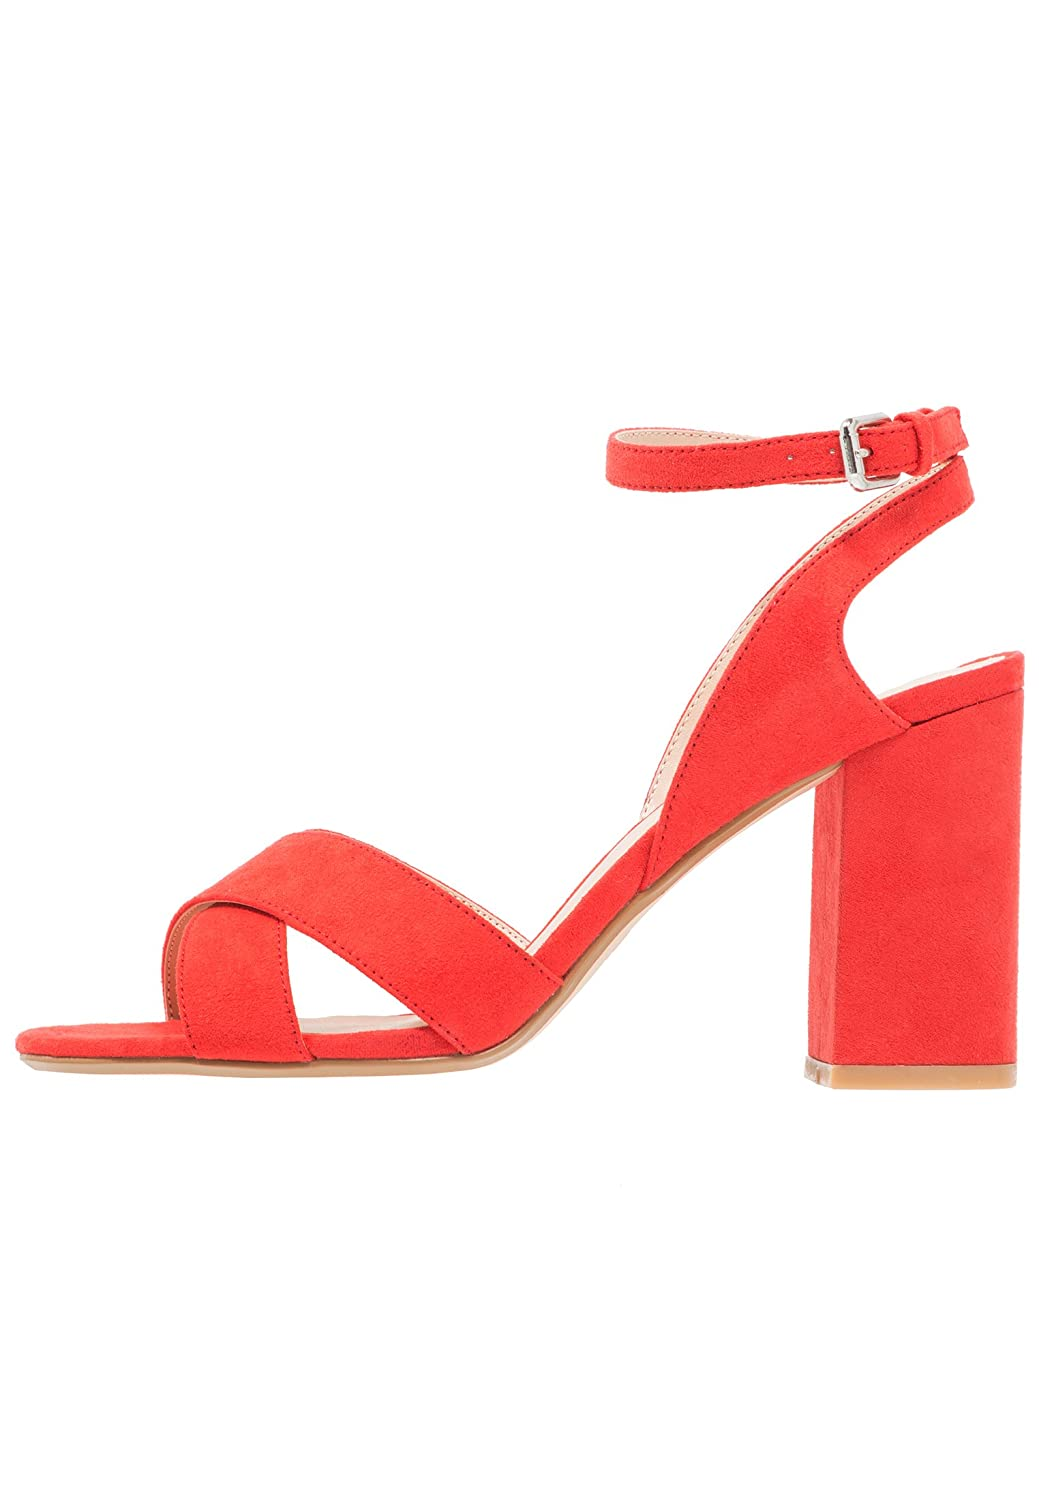 Even&ODD Sandals for Women - High Heel Sandals with Ankle Strap - Strappy Block Heels Made of Faux Leather - Open Toe Summer Shoes: Amazon.co.uk: Shoes & ...